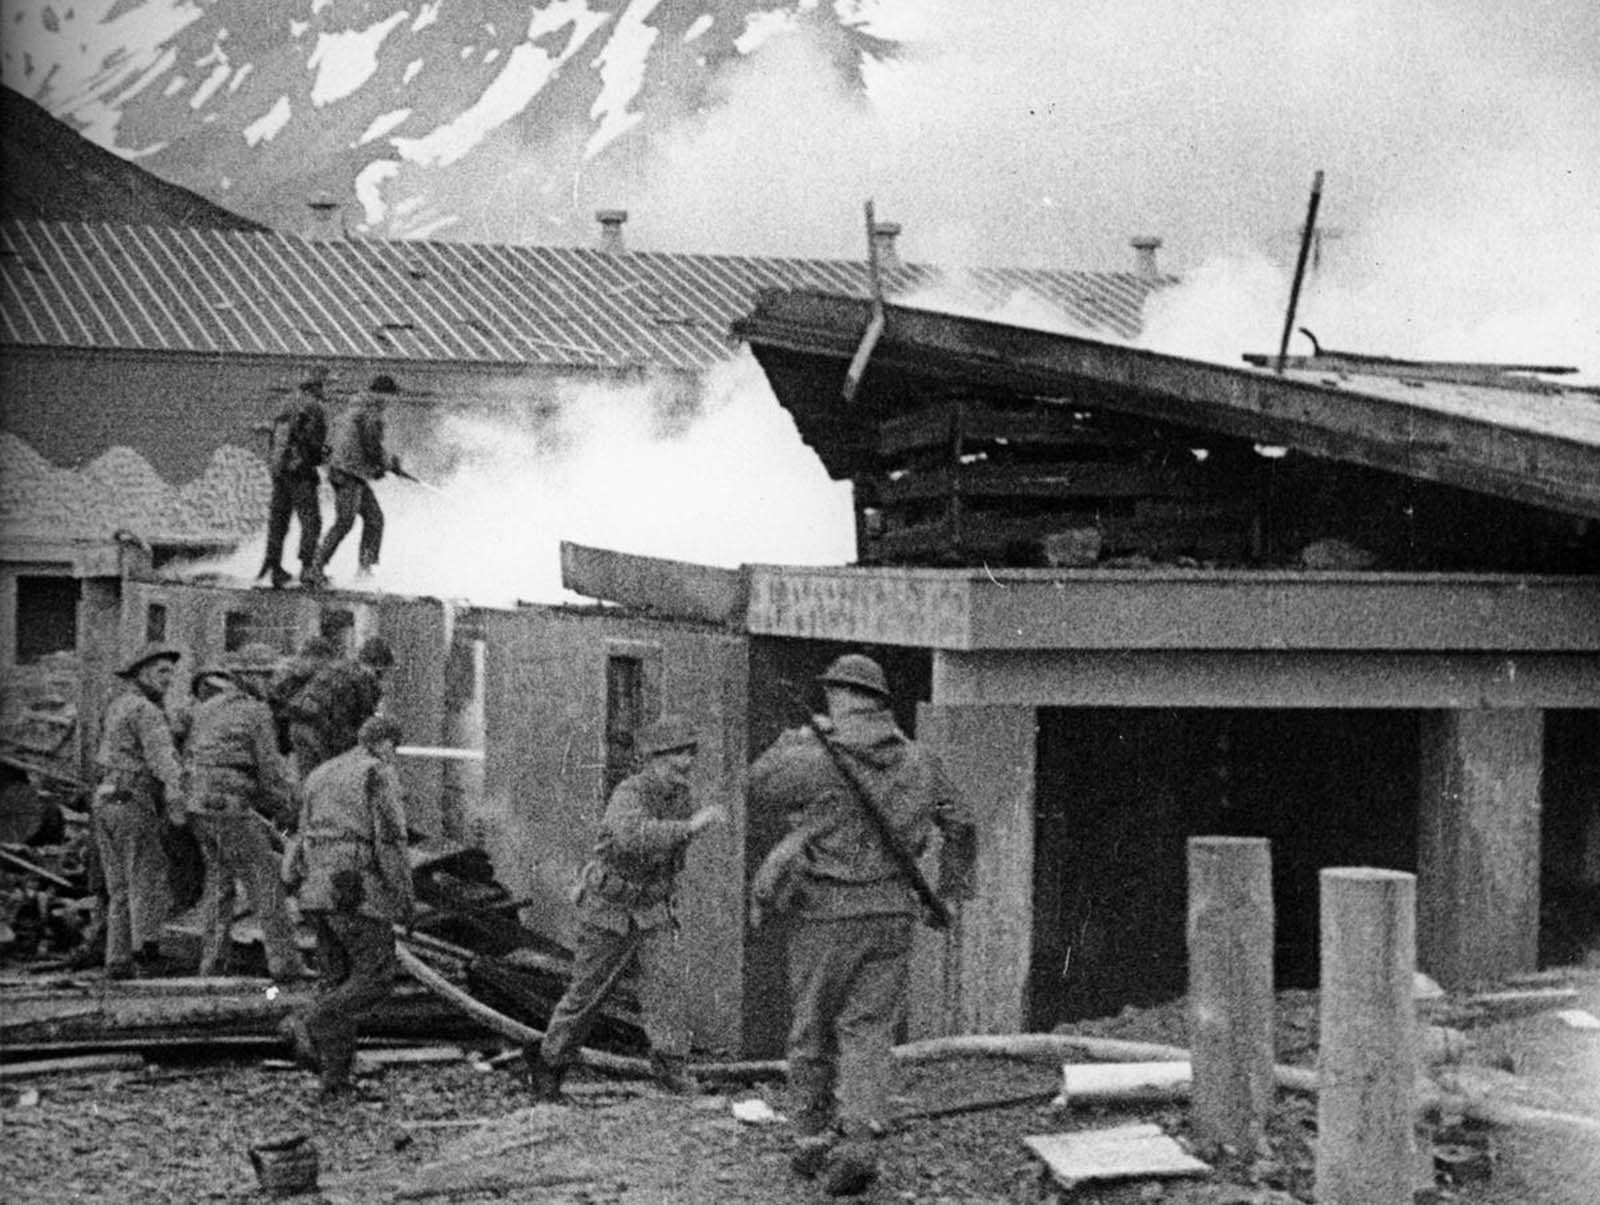 U.S. soldiers fight a fire after an air raid by Japanese dive bombers on their base in Dutch Harbor, Alaska, in June 1942.